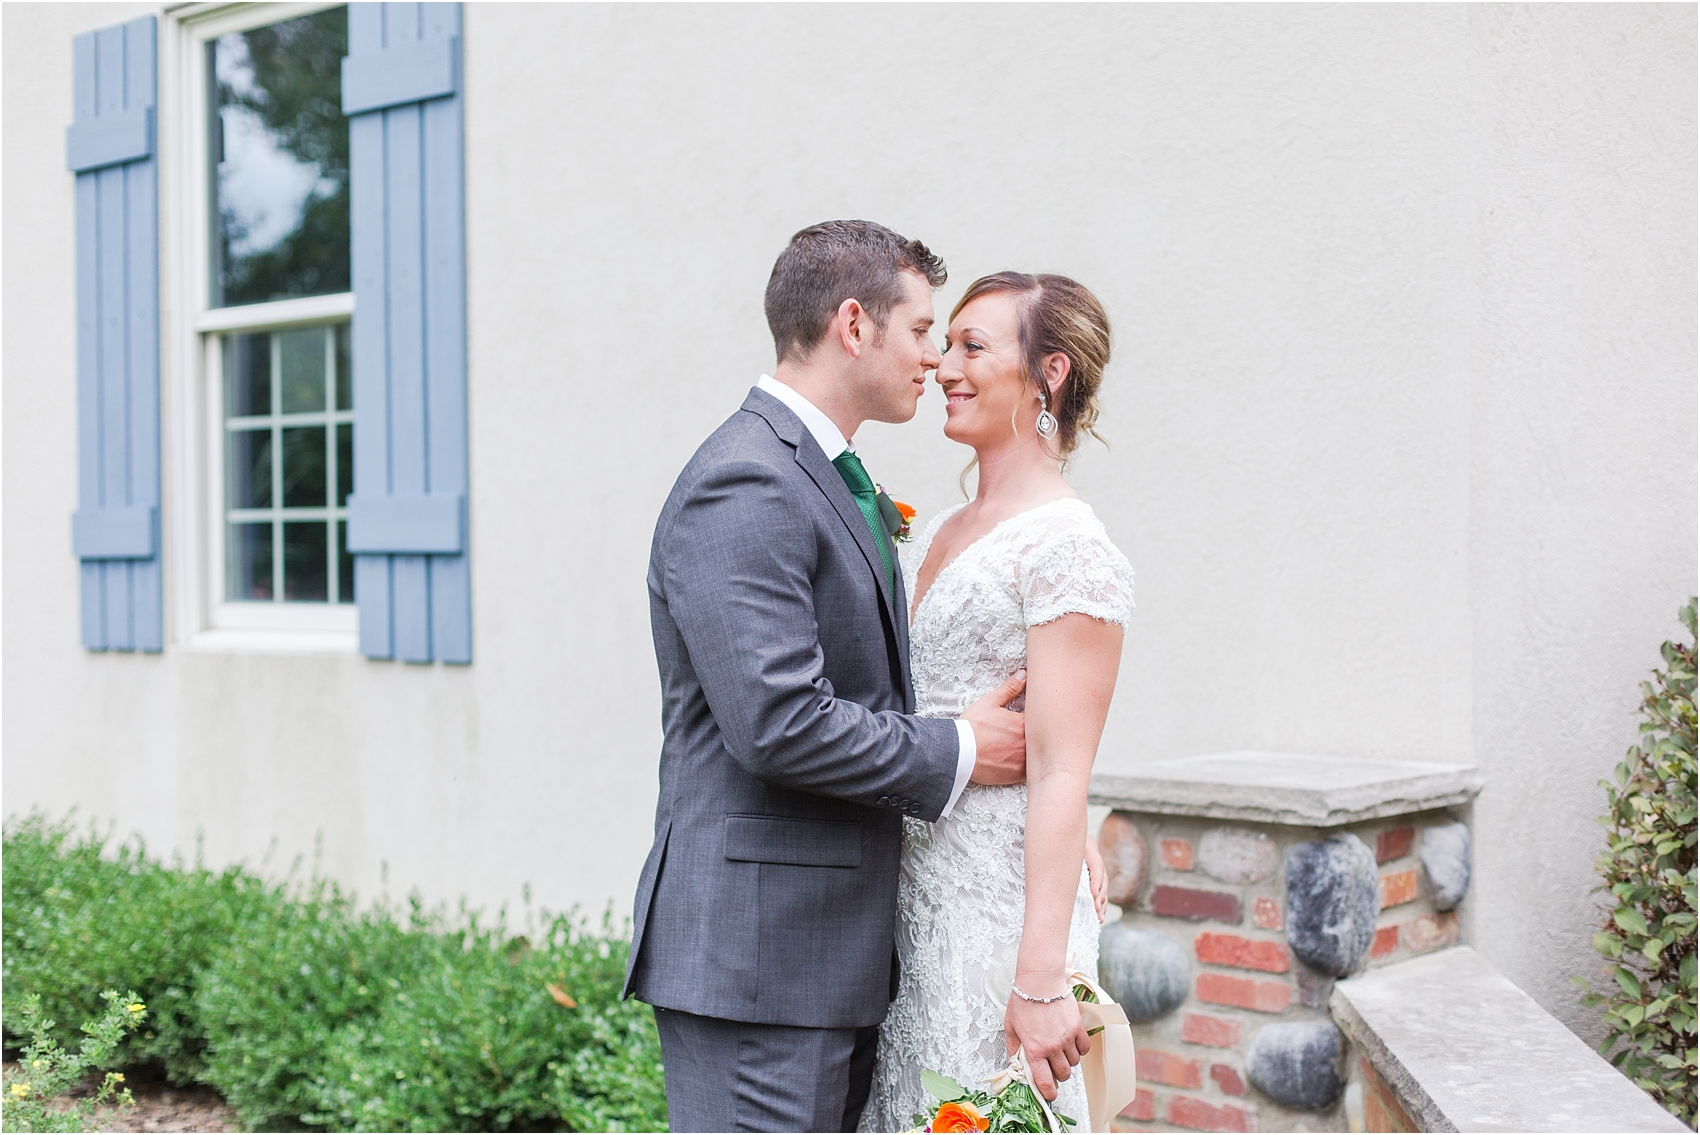 romantic-intimate-backyard-wedding-photos-at-private-estate-in-ann-arbor-mi-by-courtney-carolyn-photography_0069.jpg